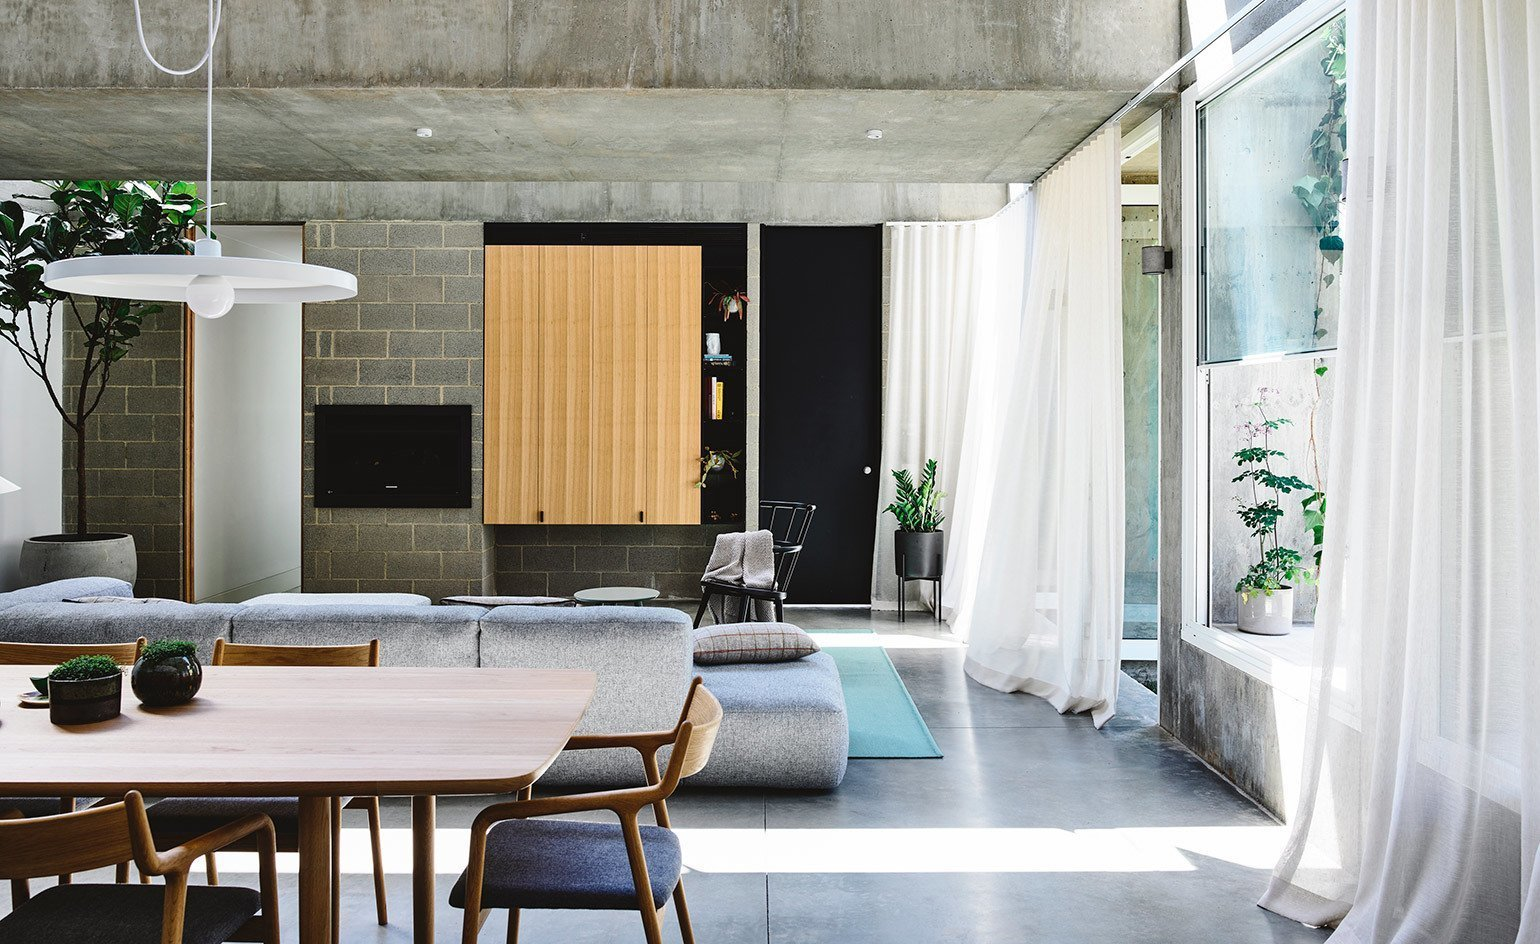 Living Room, Chair, Sofa, Coffee Tables, Table, Pendant Lighting, Accent Lighting, and Concrete Floor  Photo 3 of 11 in Vaulted Skylights and Concrete Columns Connect This Melbourne Home With the Sun